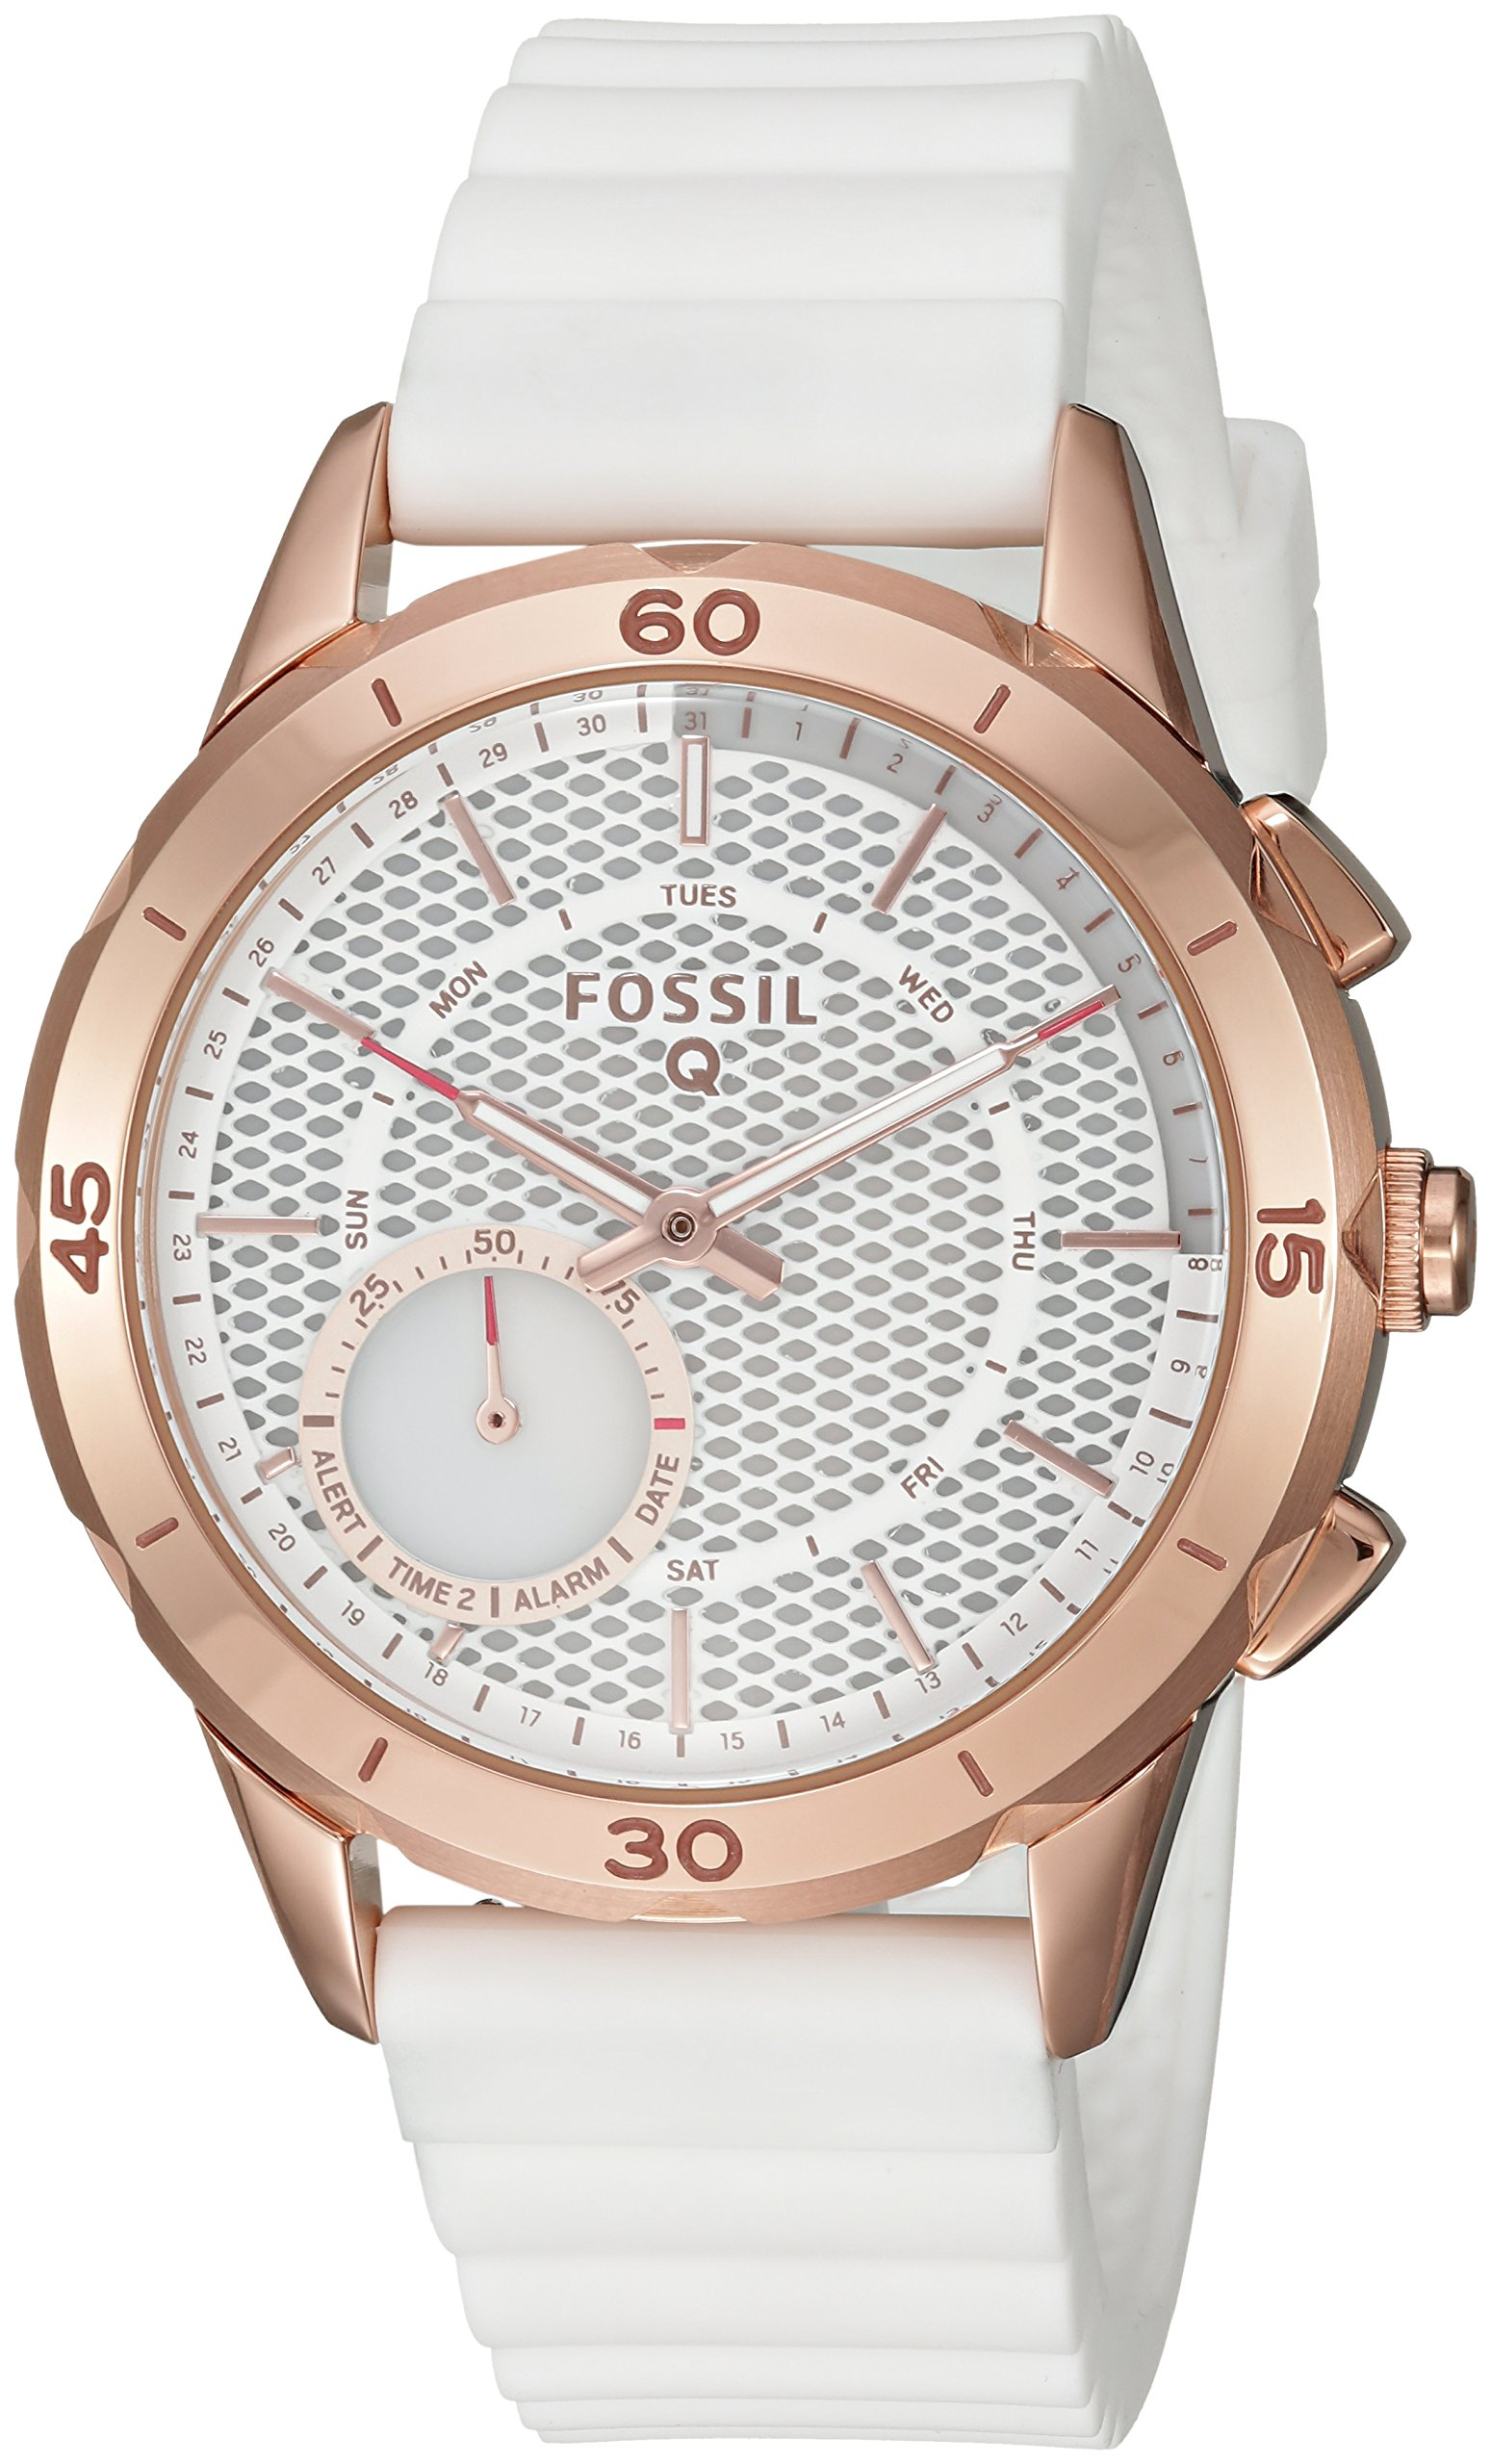 Fossil Hybrid Smartwatch - Q Modern Pursuit White